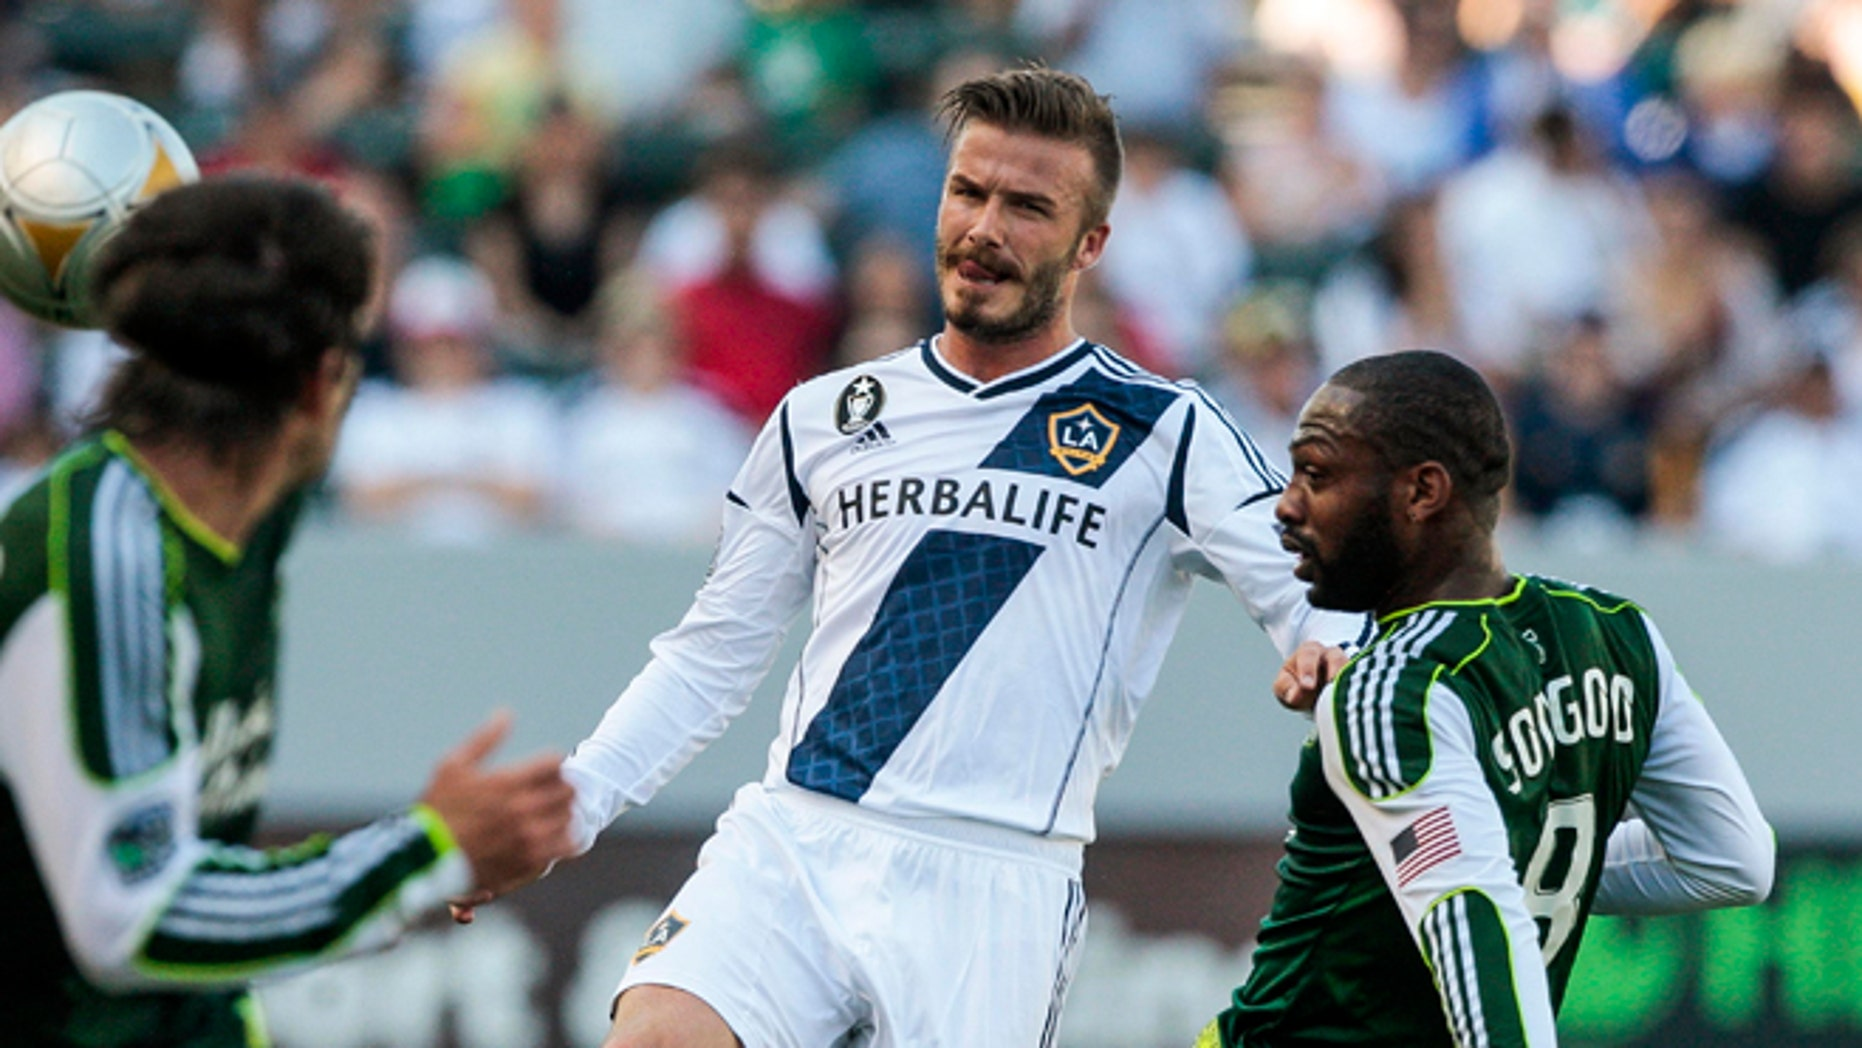 June 17, 2012: Los Angeles Galaxy midfielder David Beckham, center, makes a pass around Portland Timbers midfielder Franck Songo'o, right, as Portland Timbers defender Mike Chabala, left, gives chase during the first half of an MLS soccer match in Carson, Calif.